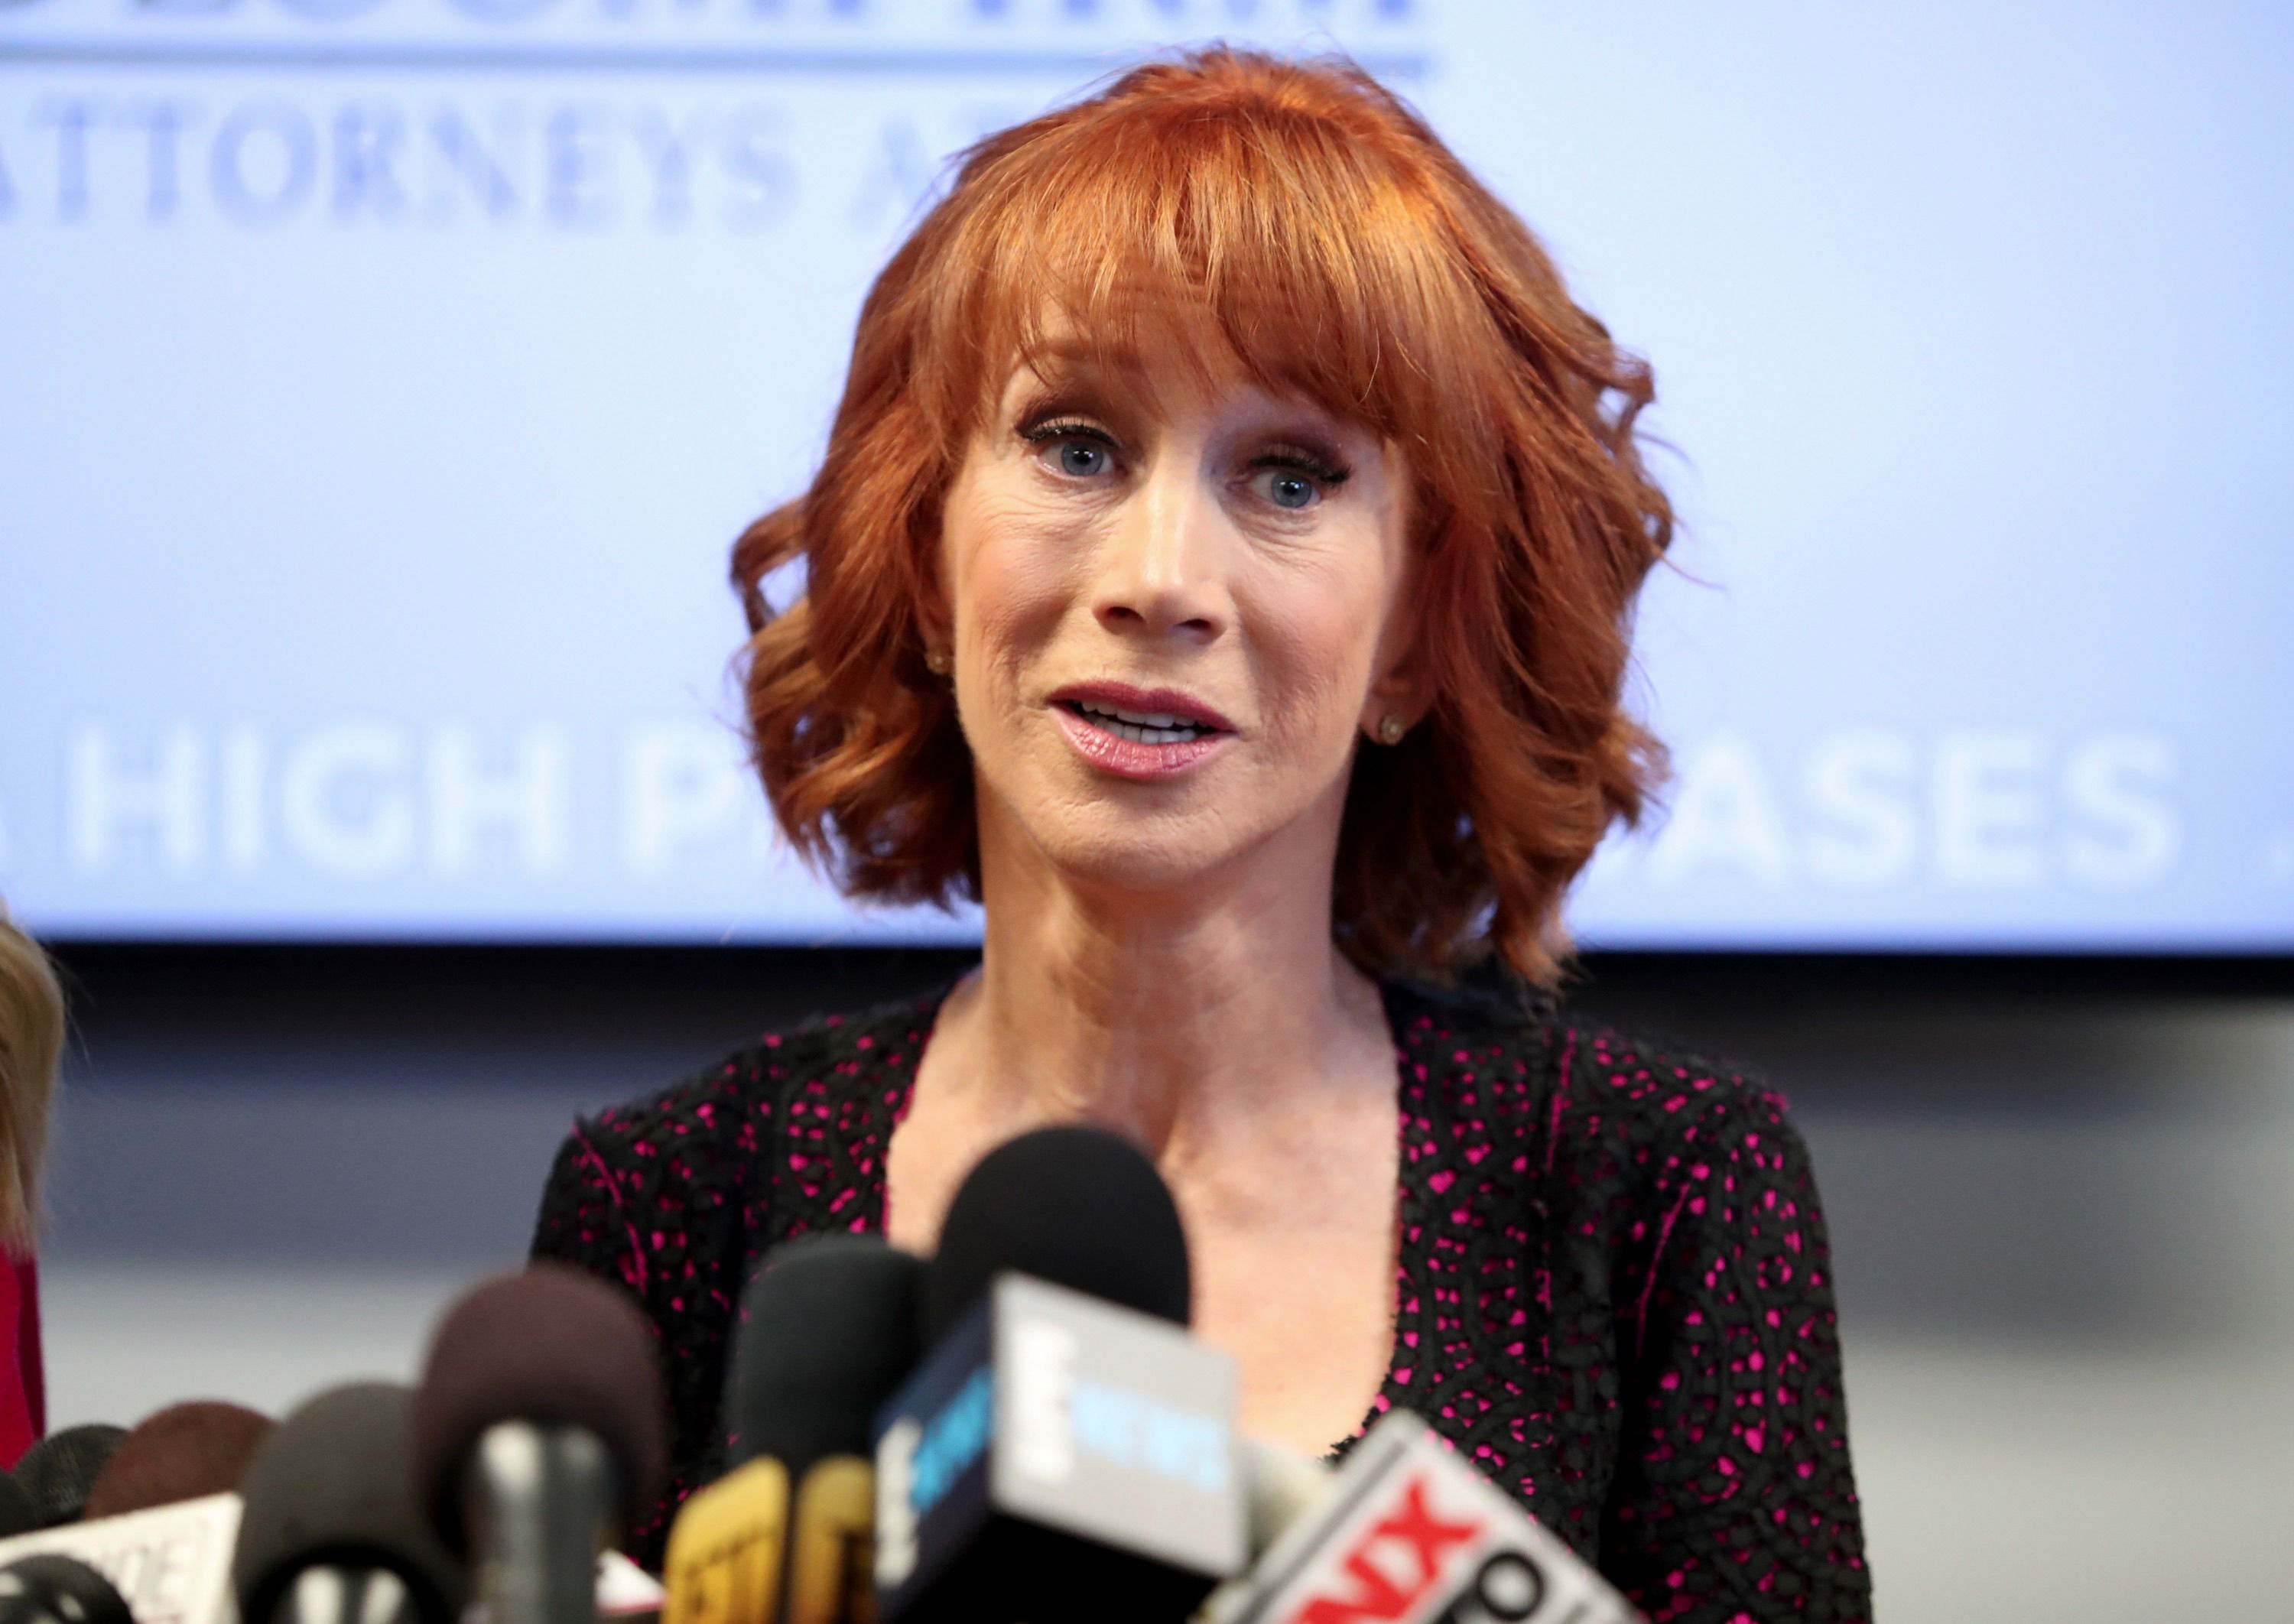 Andy Cohen Claims Kathy Griffin's Video Is A